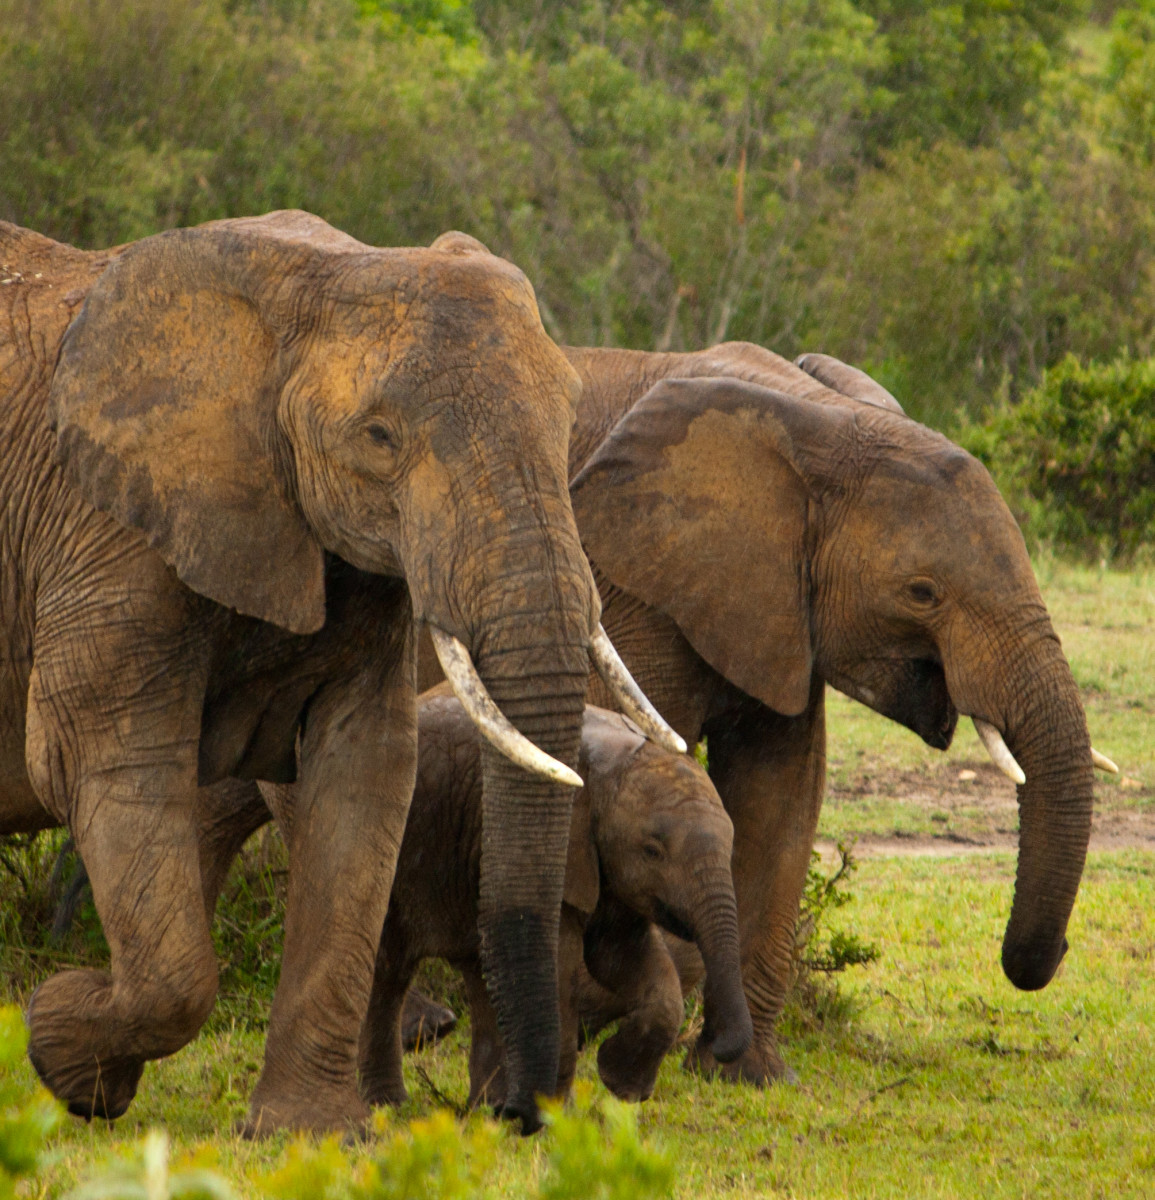 Elephants are very protective of their young. This is one thing that helps them survive despite their decreasing numbers.